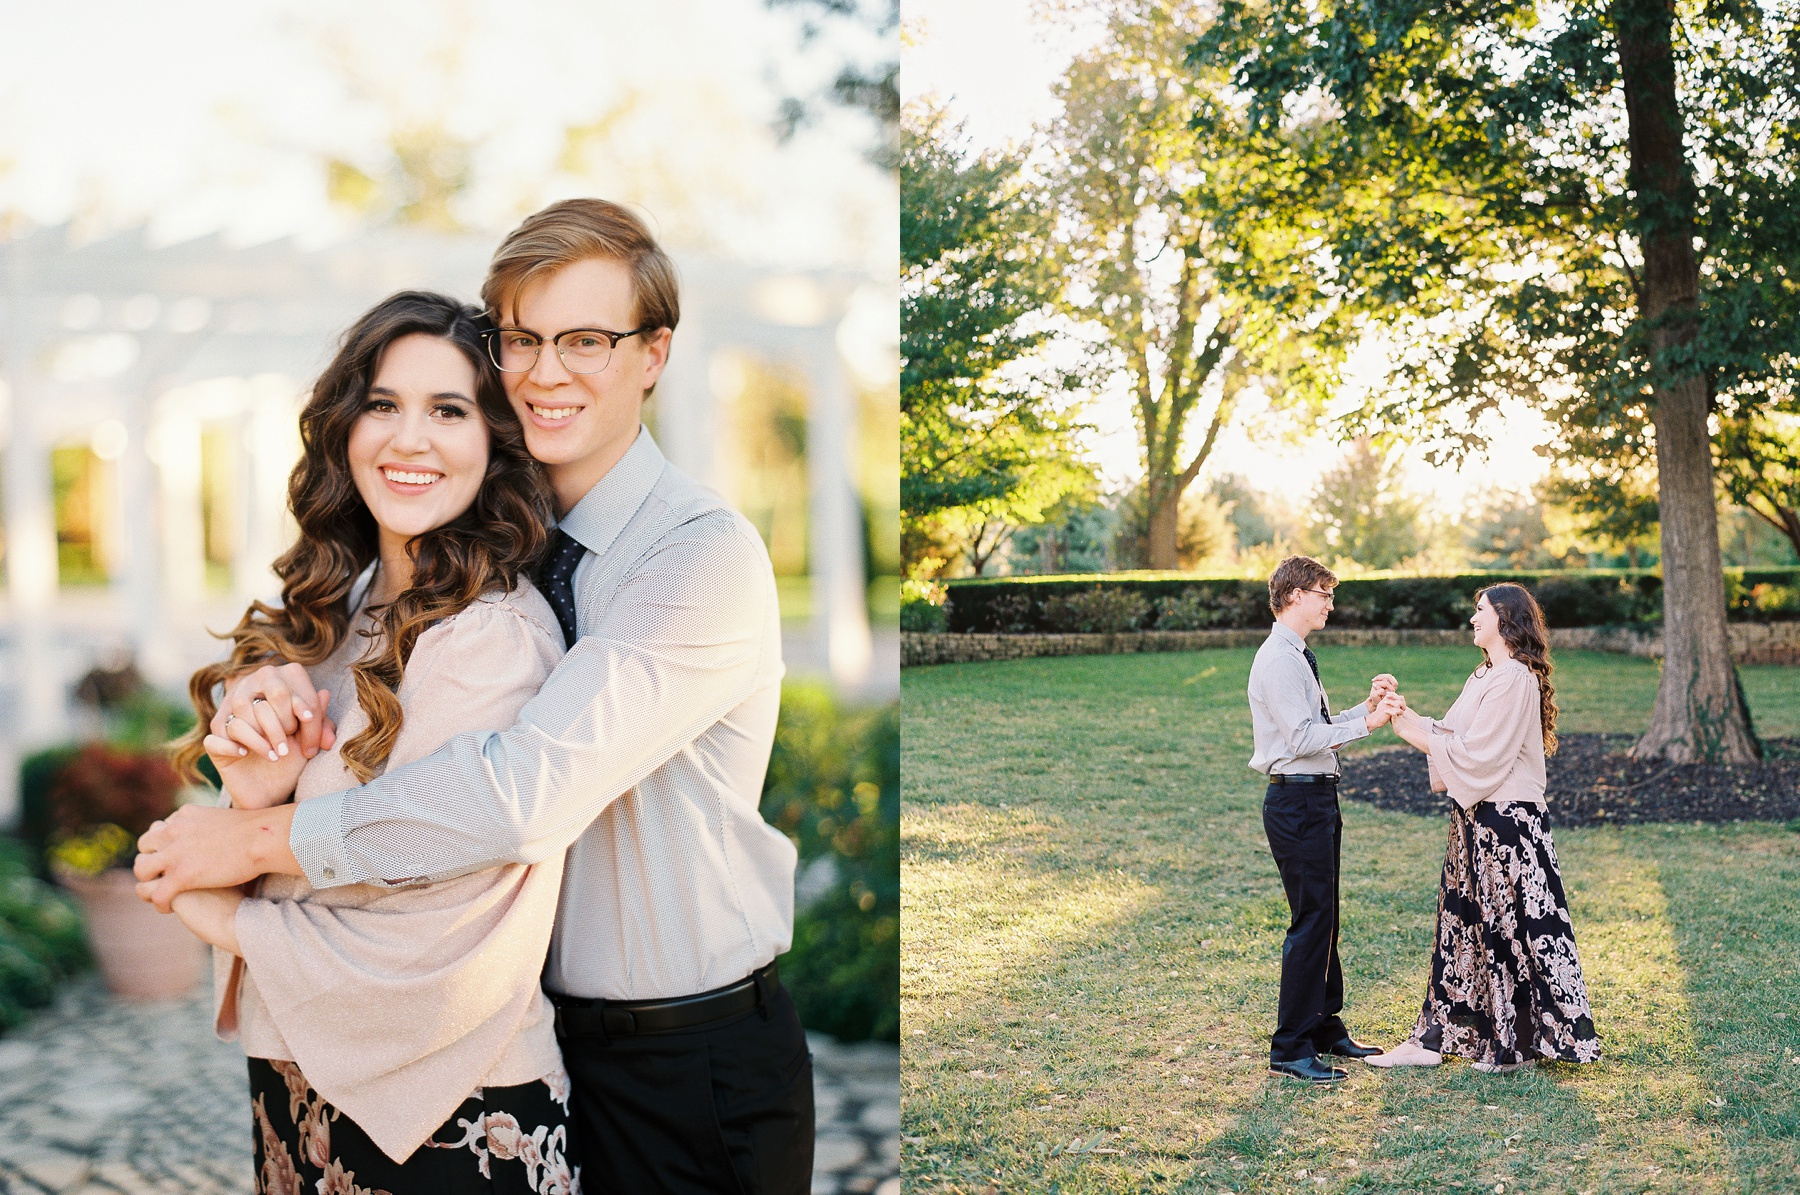 Haseltine Estate Wedding Springfield Missouri Photographer_0889.jpg